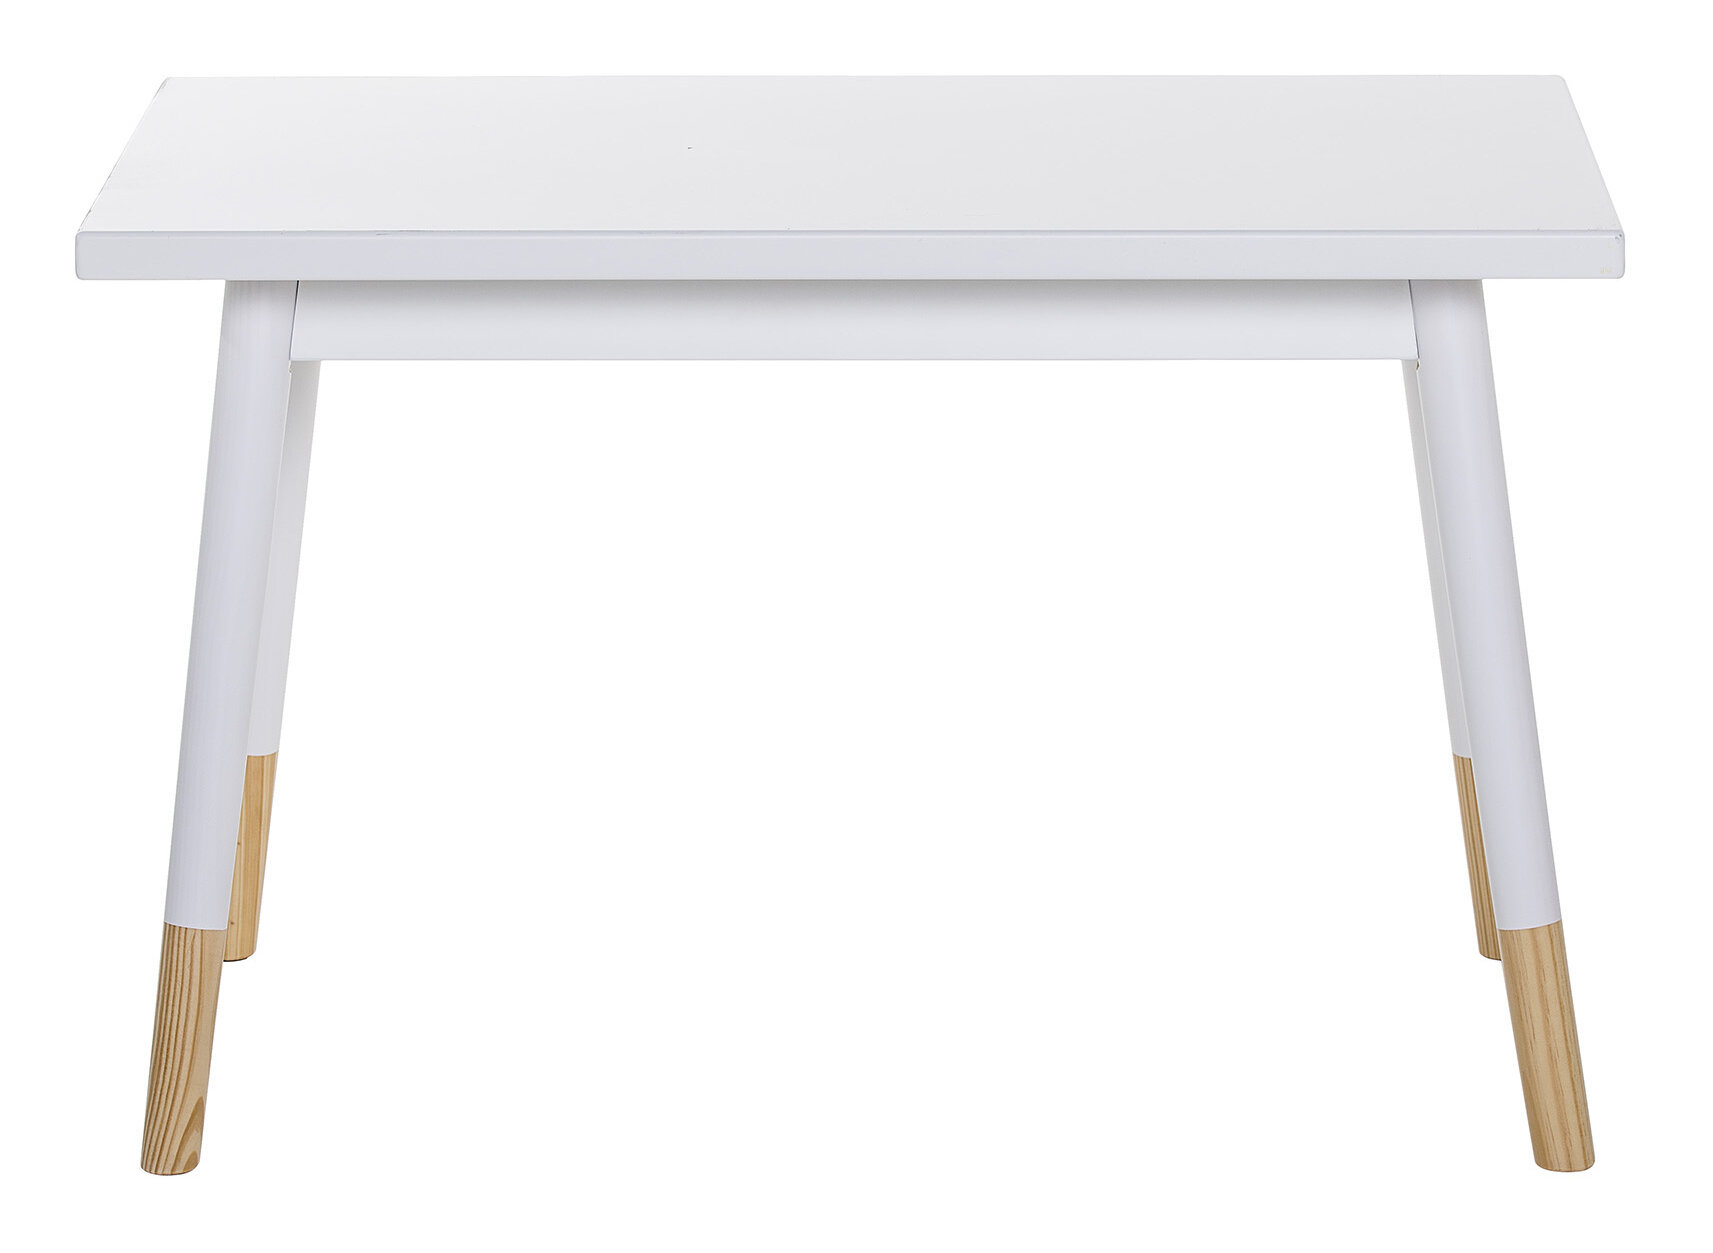 Viv + Rae Helmer Kids Rectangular Writing Table U0026 Reviews | Wayfair